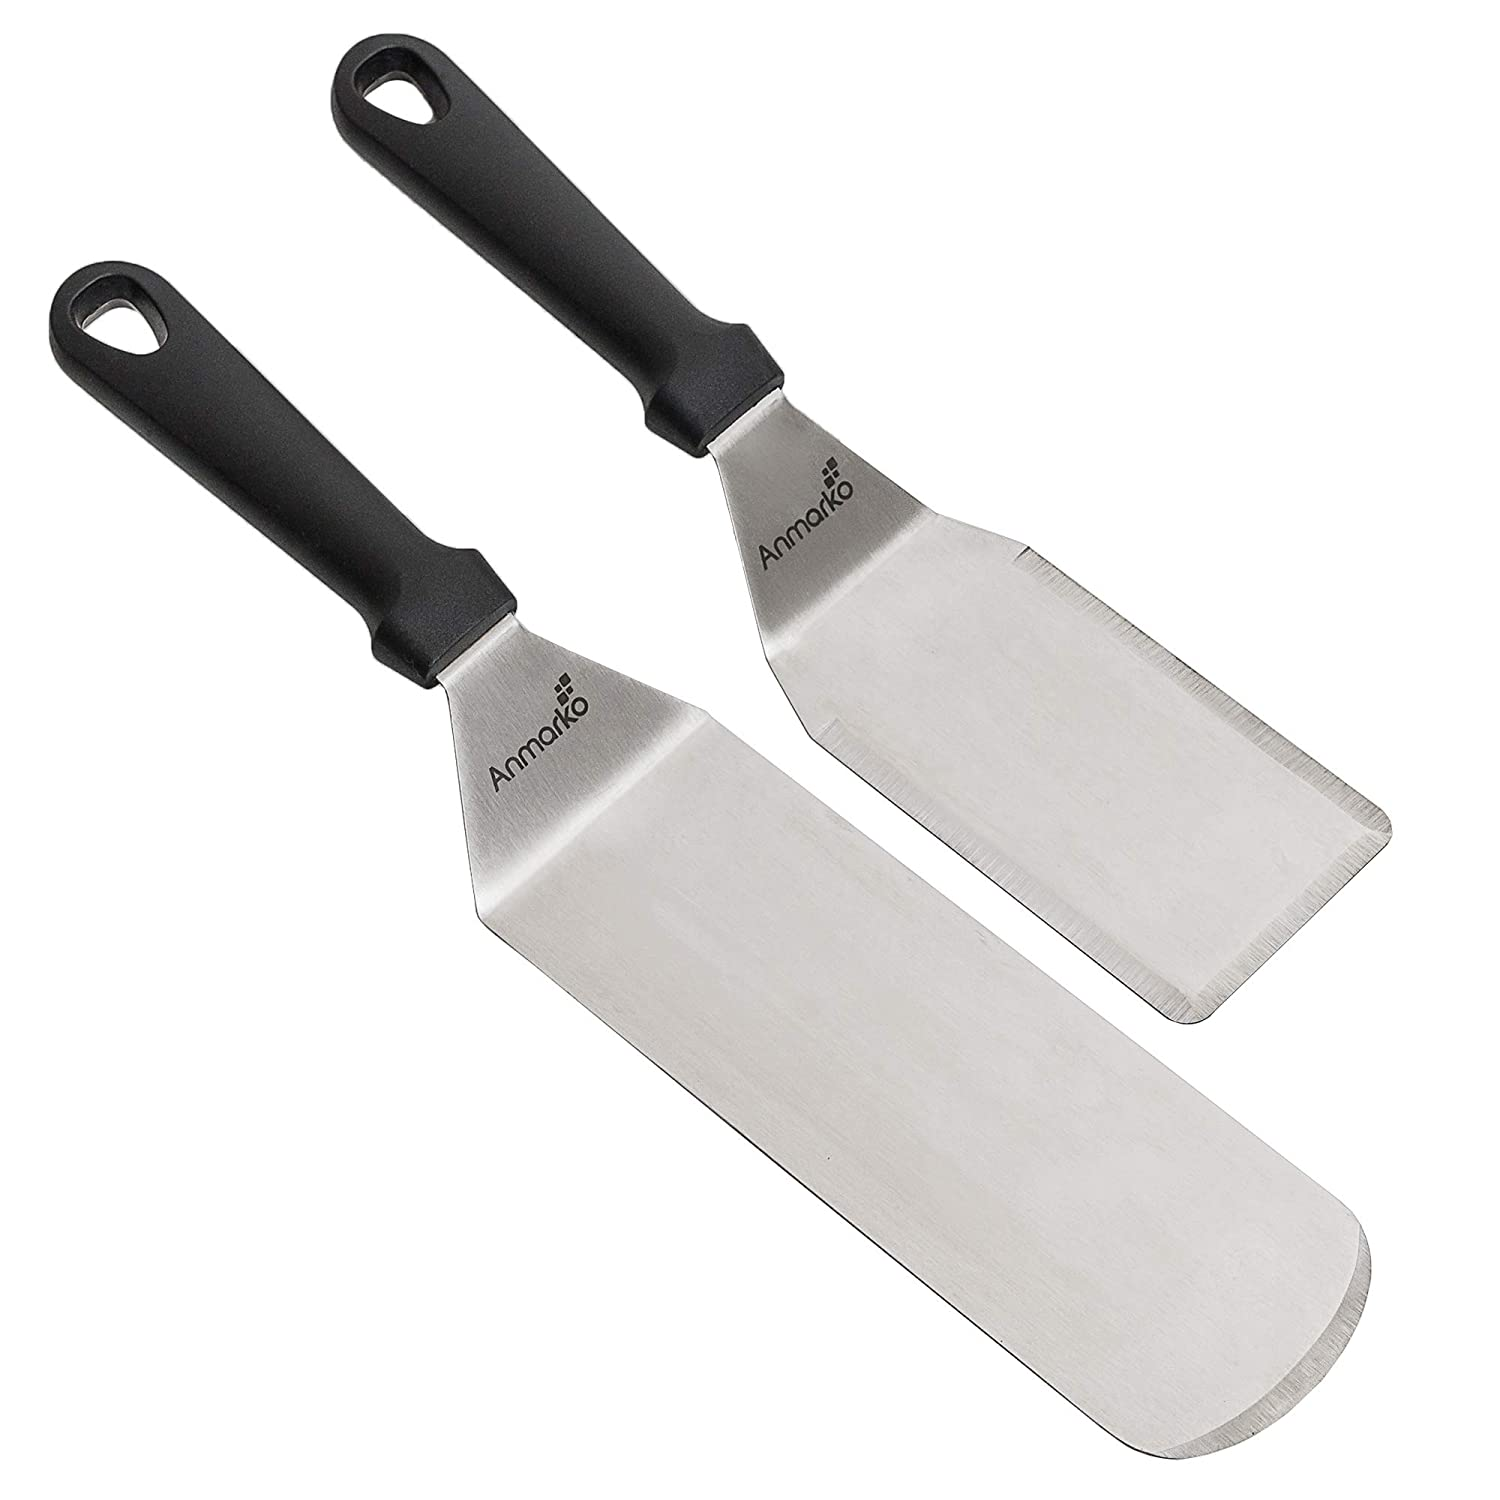 Professional Spatula Set - Stainless Steel Pancake Turner and Griddle Scraper - Griddle Spatula - Flexible Flipper - for BBQ or Grill - Set of 2 Commercial Grade Spatulas